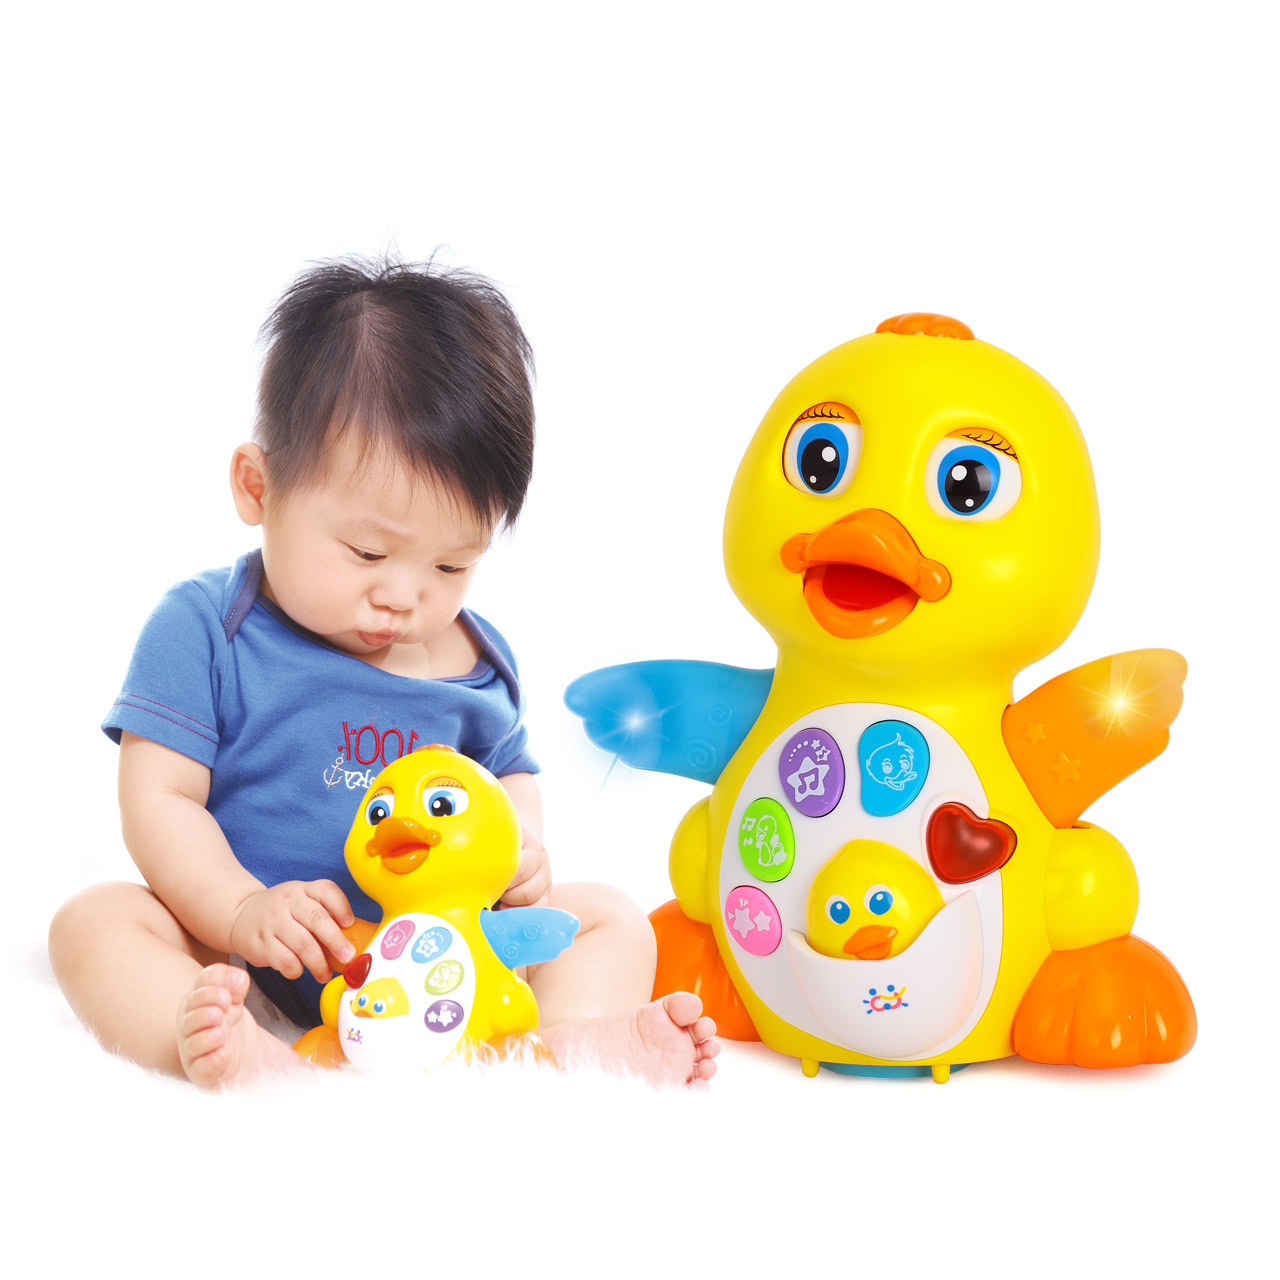 New Arrival Baby Toys Eq Flapping Yellow Duck Infant Electrical Universal Toy For Children Kids 1-3 Years Old